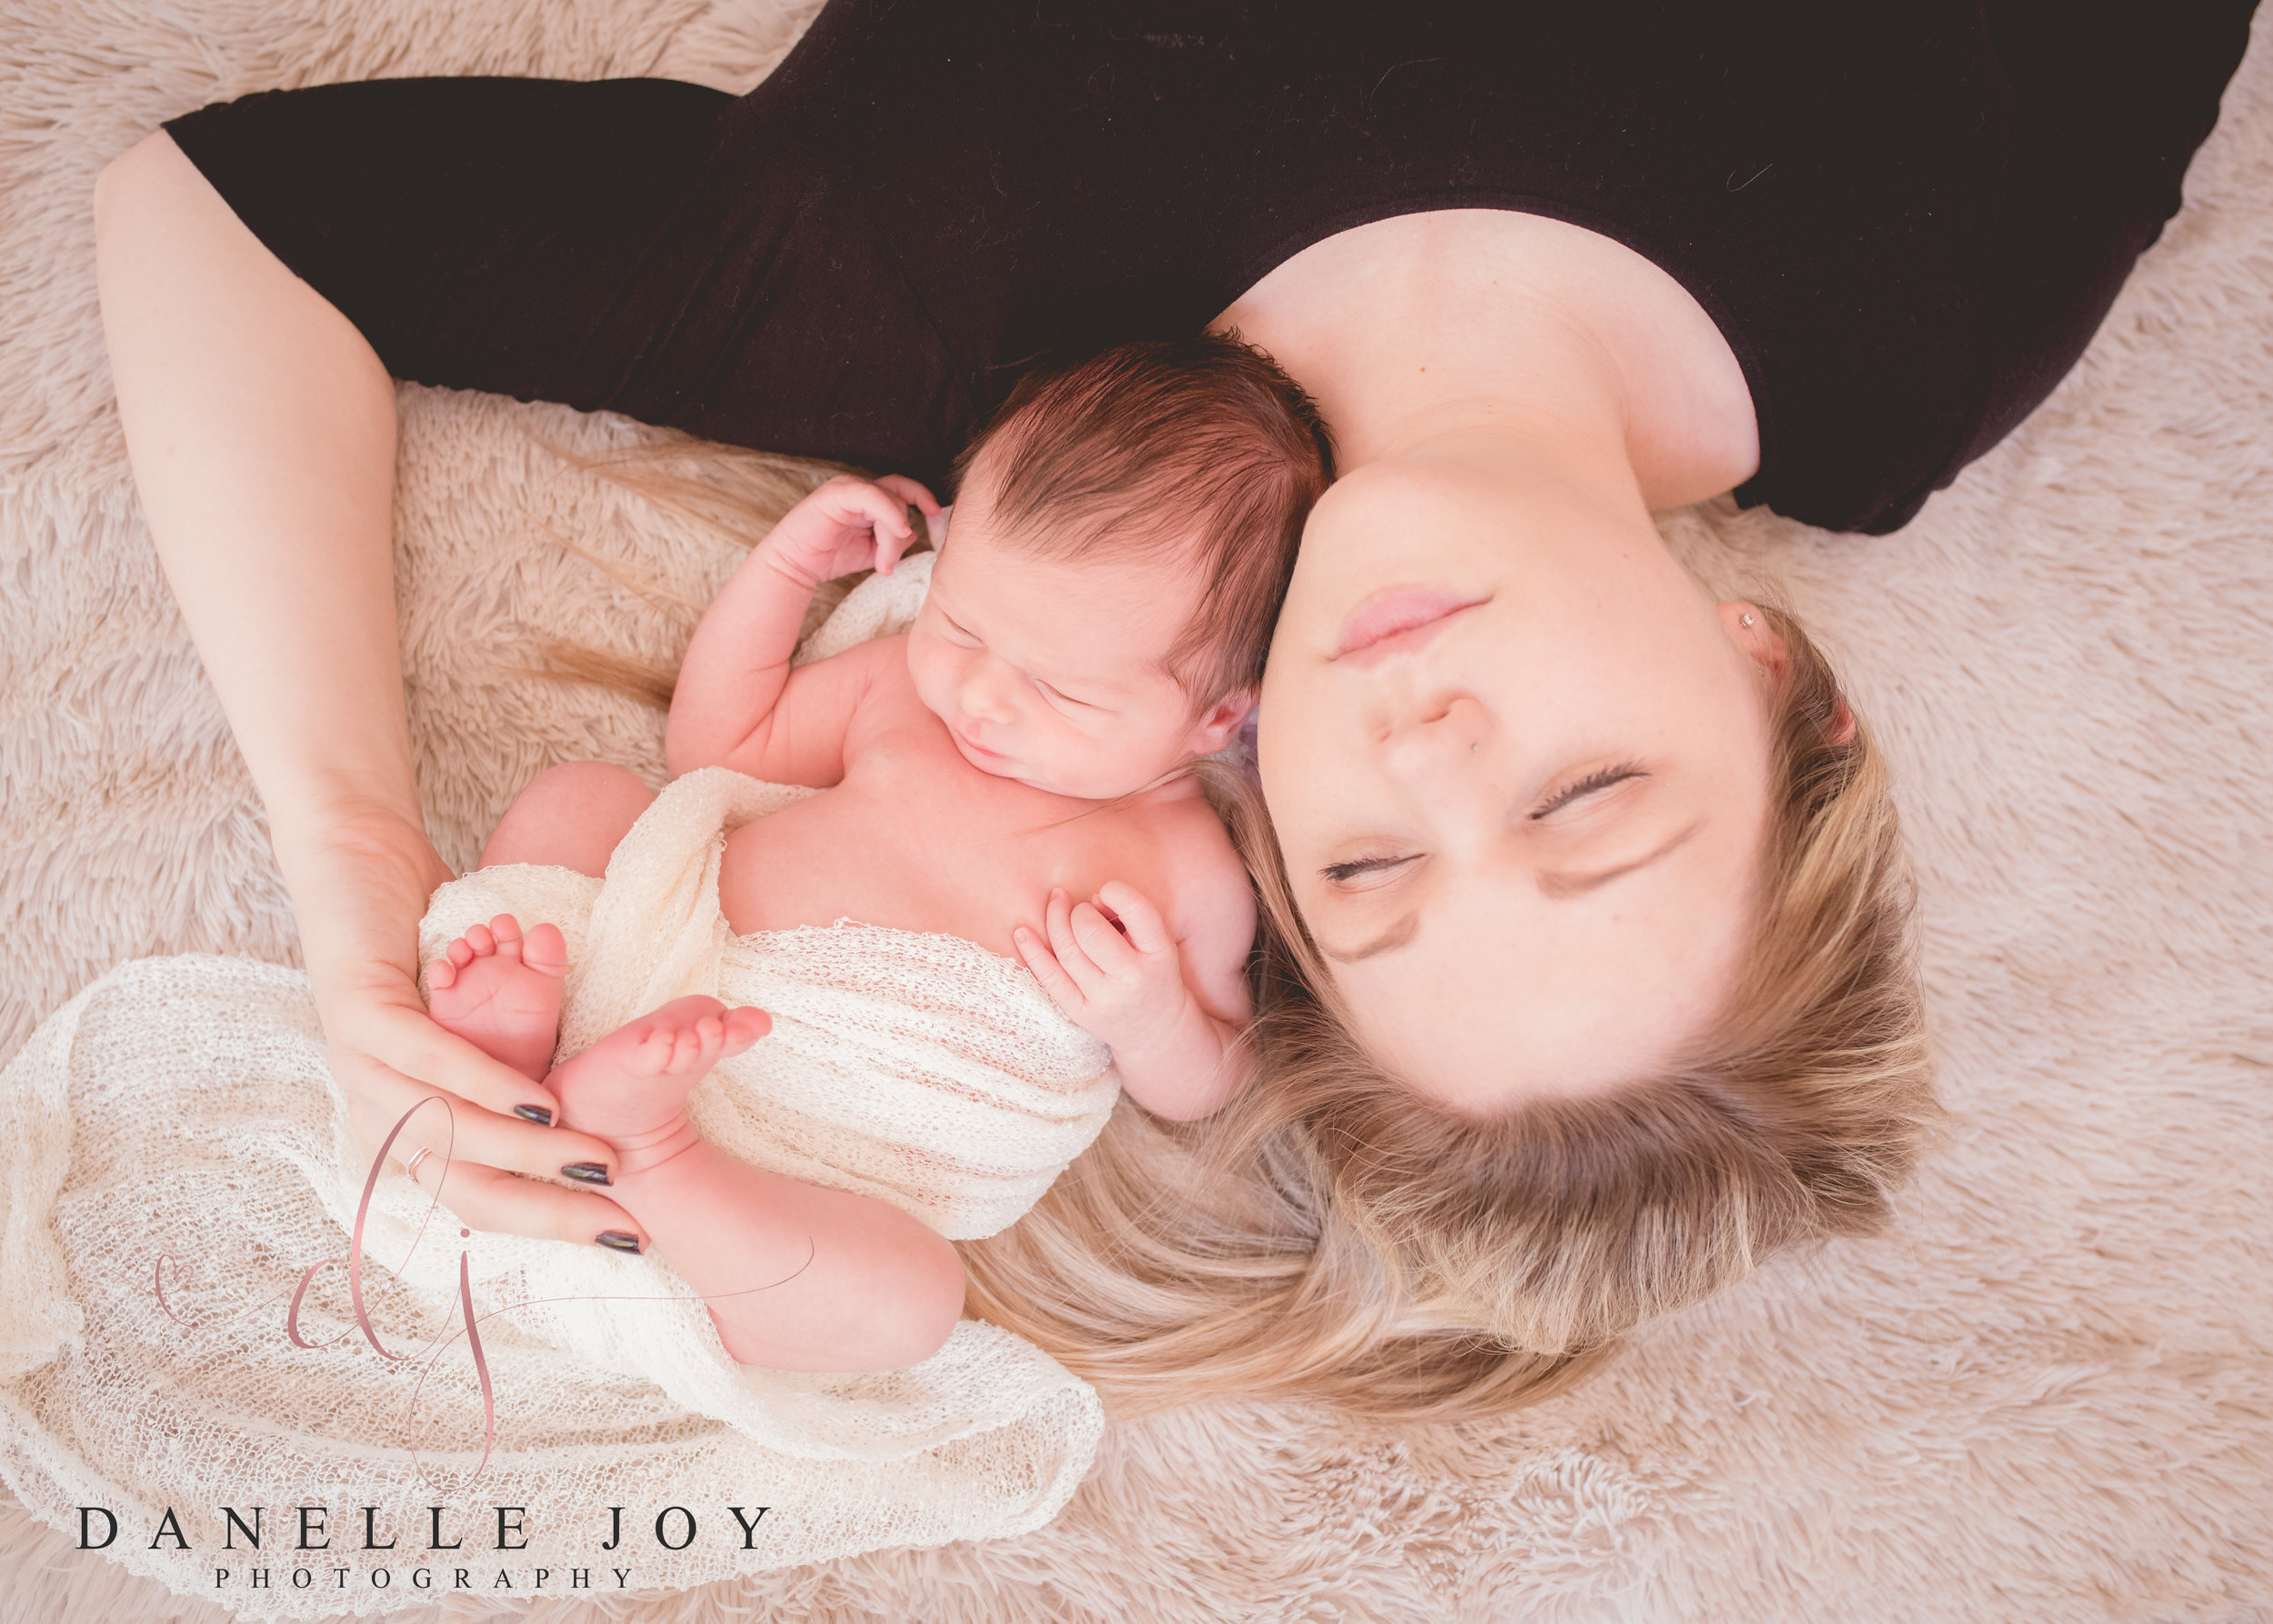 Newborn Photography, Newborn Photographers, Newborn, Newborns near me, Family Photography